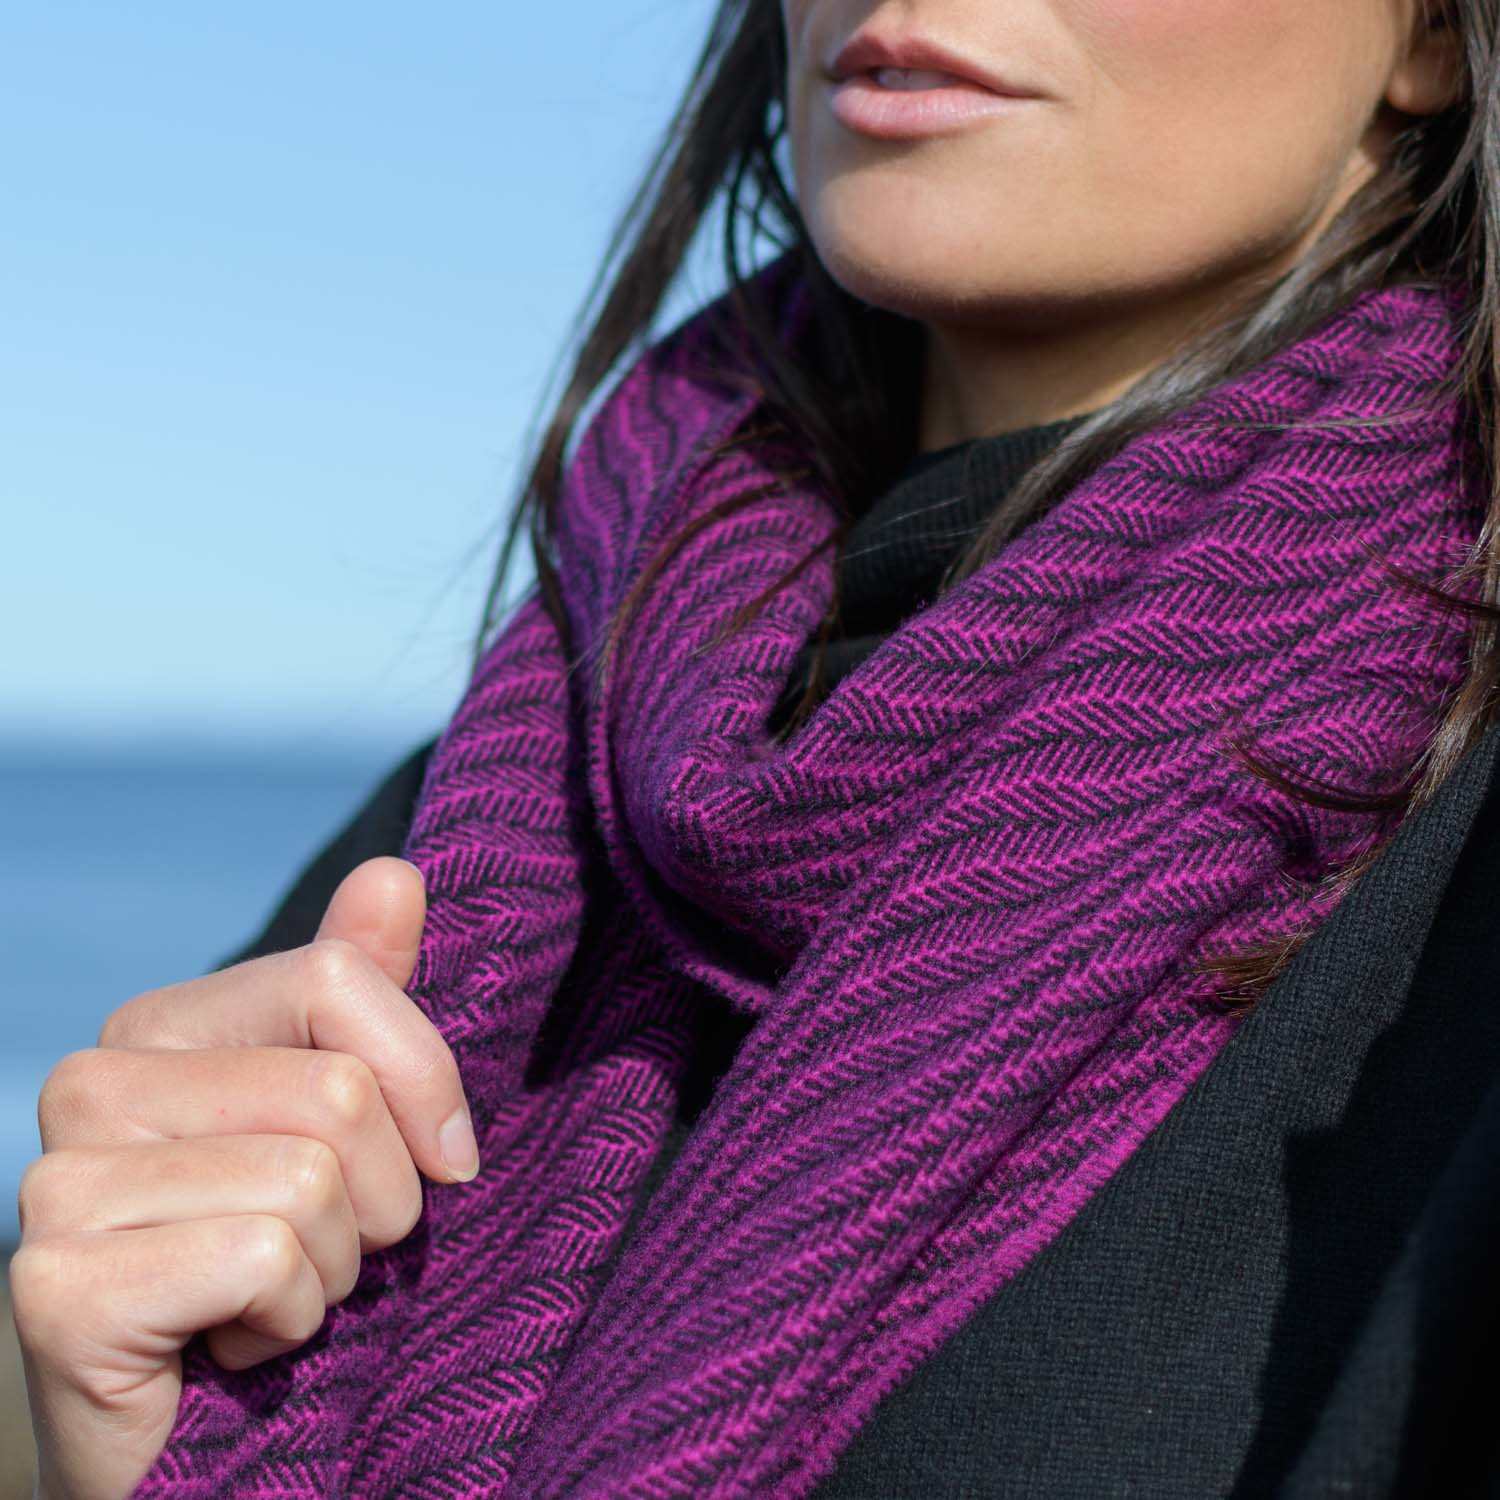 https://www.skyeweavers.co.uk/wp-content/uploads/skye-weavers-soft-wave-scarf-aurora-close.jpg